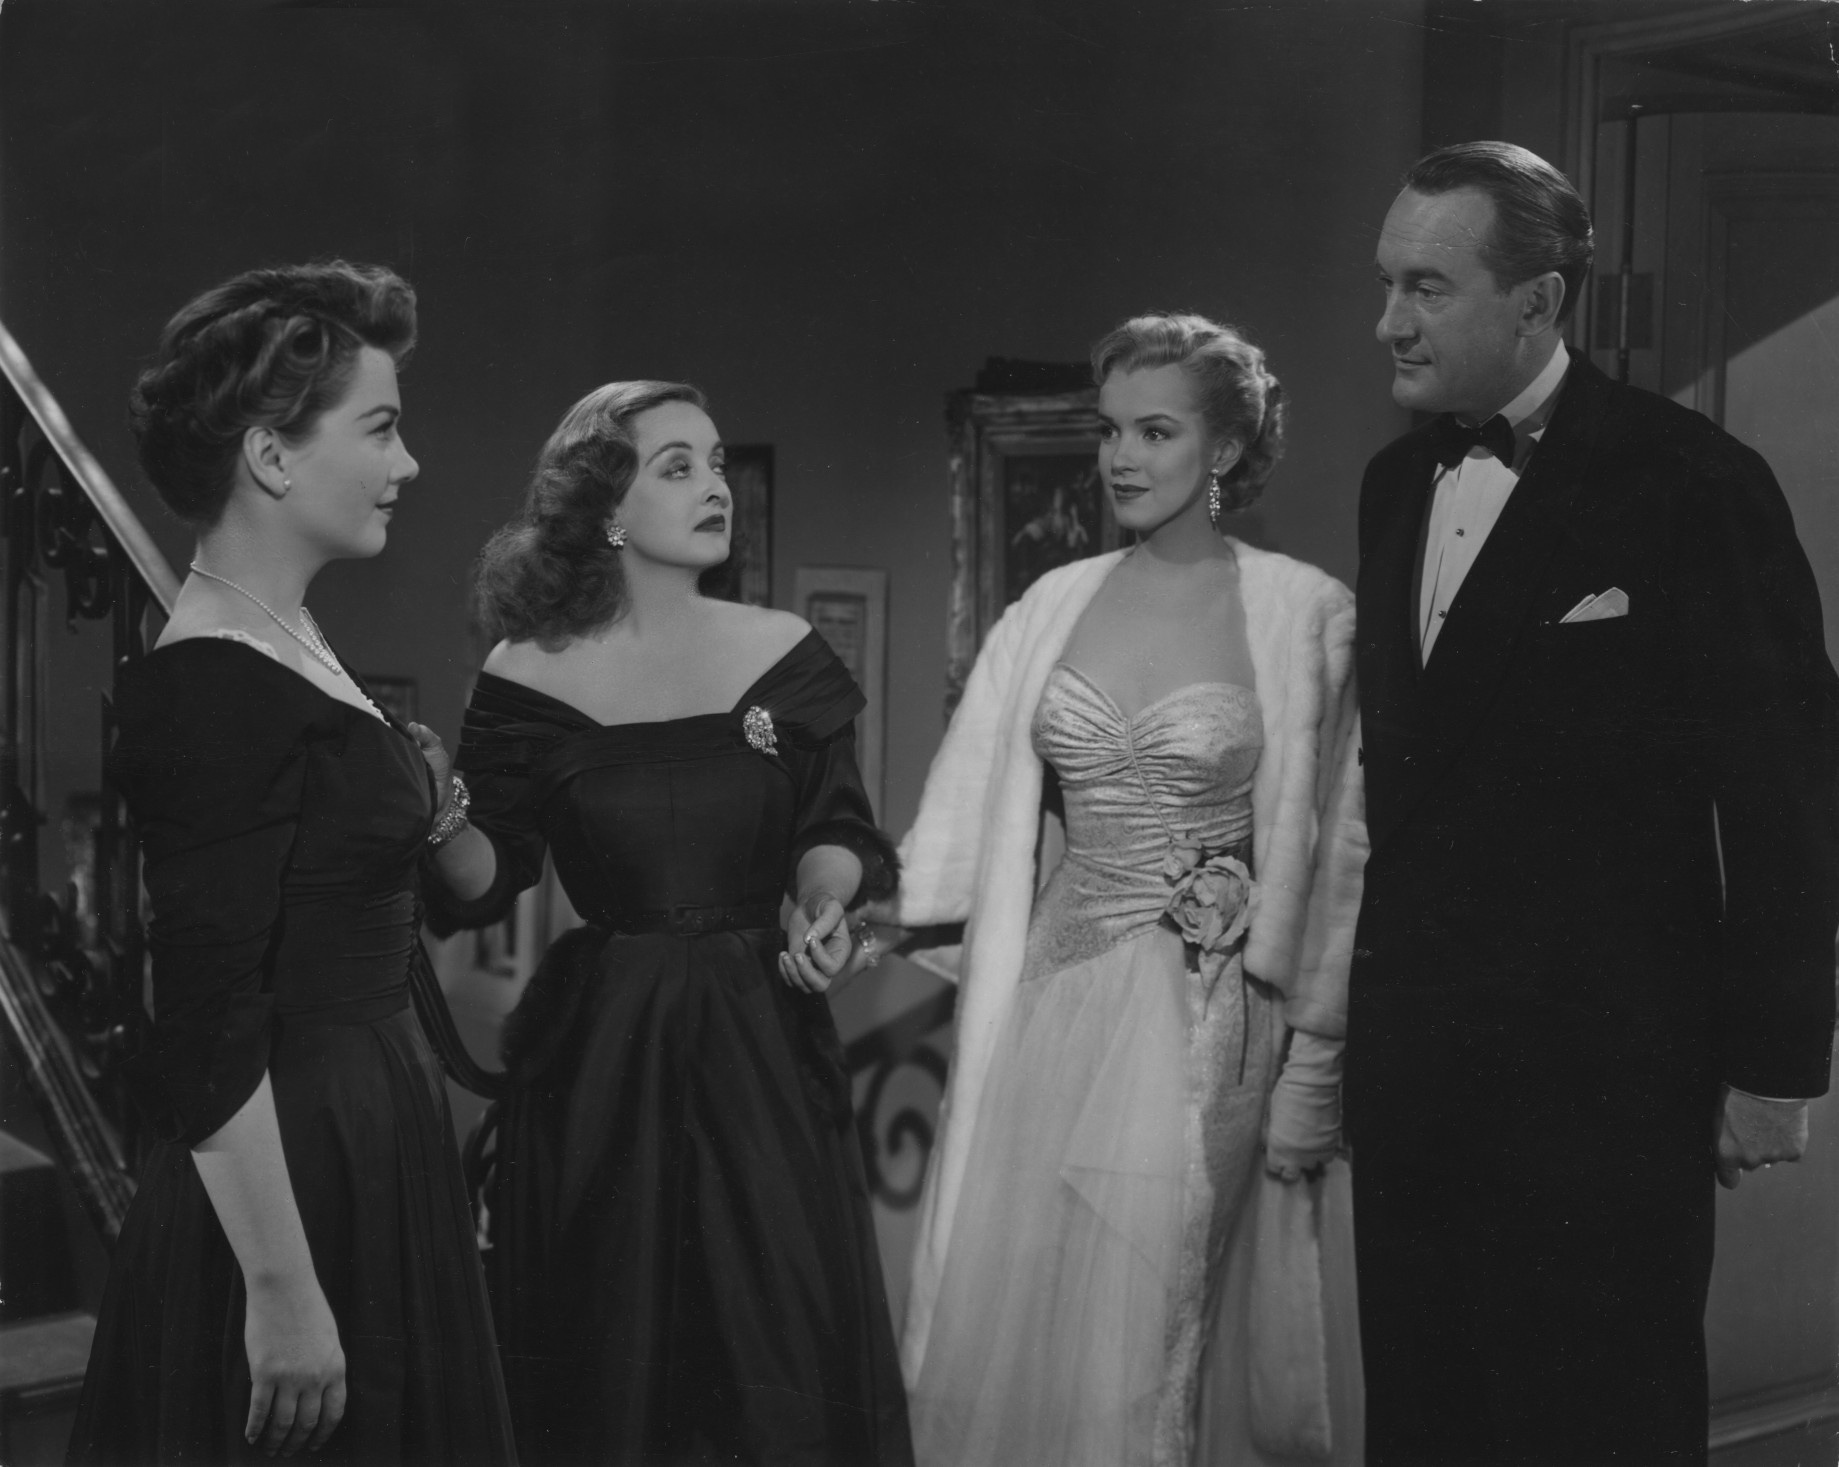 Anne Baxter, Bette Davis, Marilyn Monroe and George Sanders in 'All About Eve.'